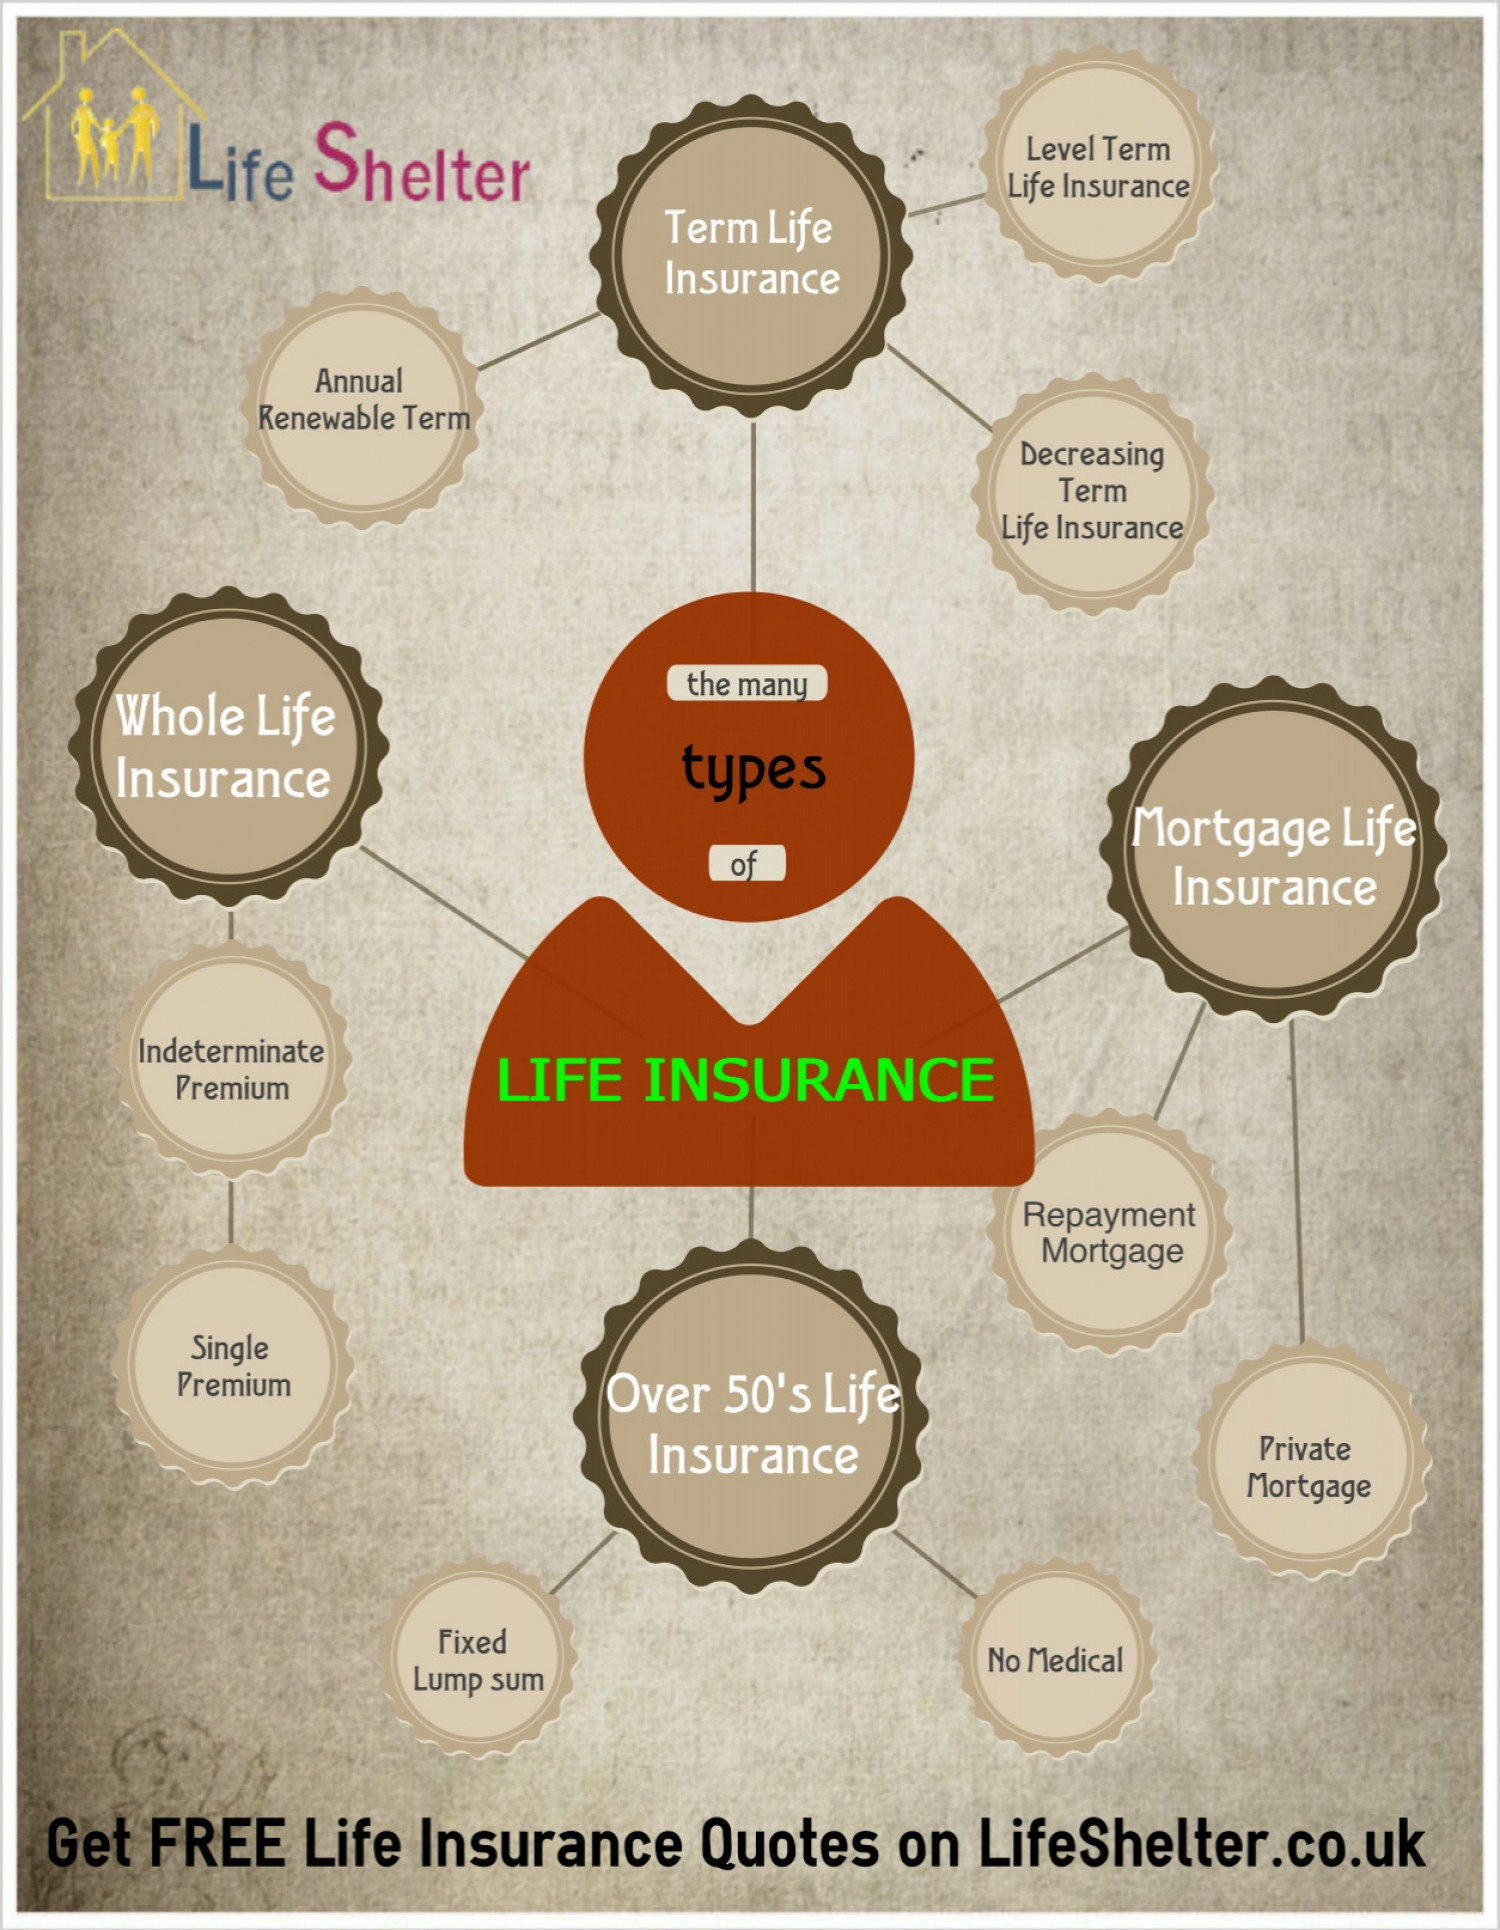 Level Term Life Insurance Quotes Life Insurance  Different Types Of Life Insurance  Visual.ly